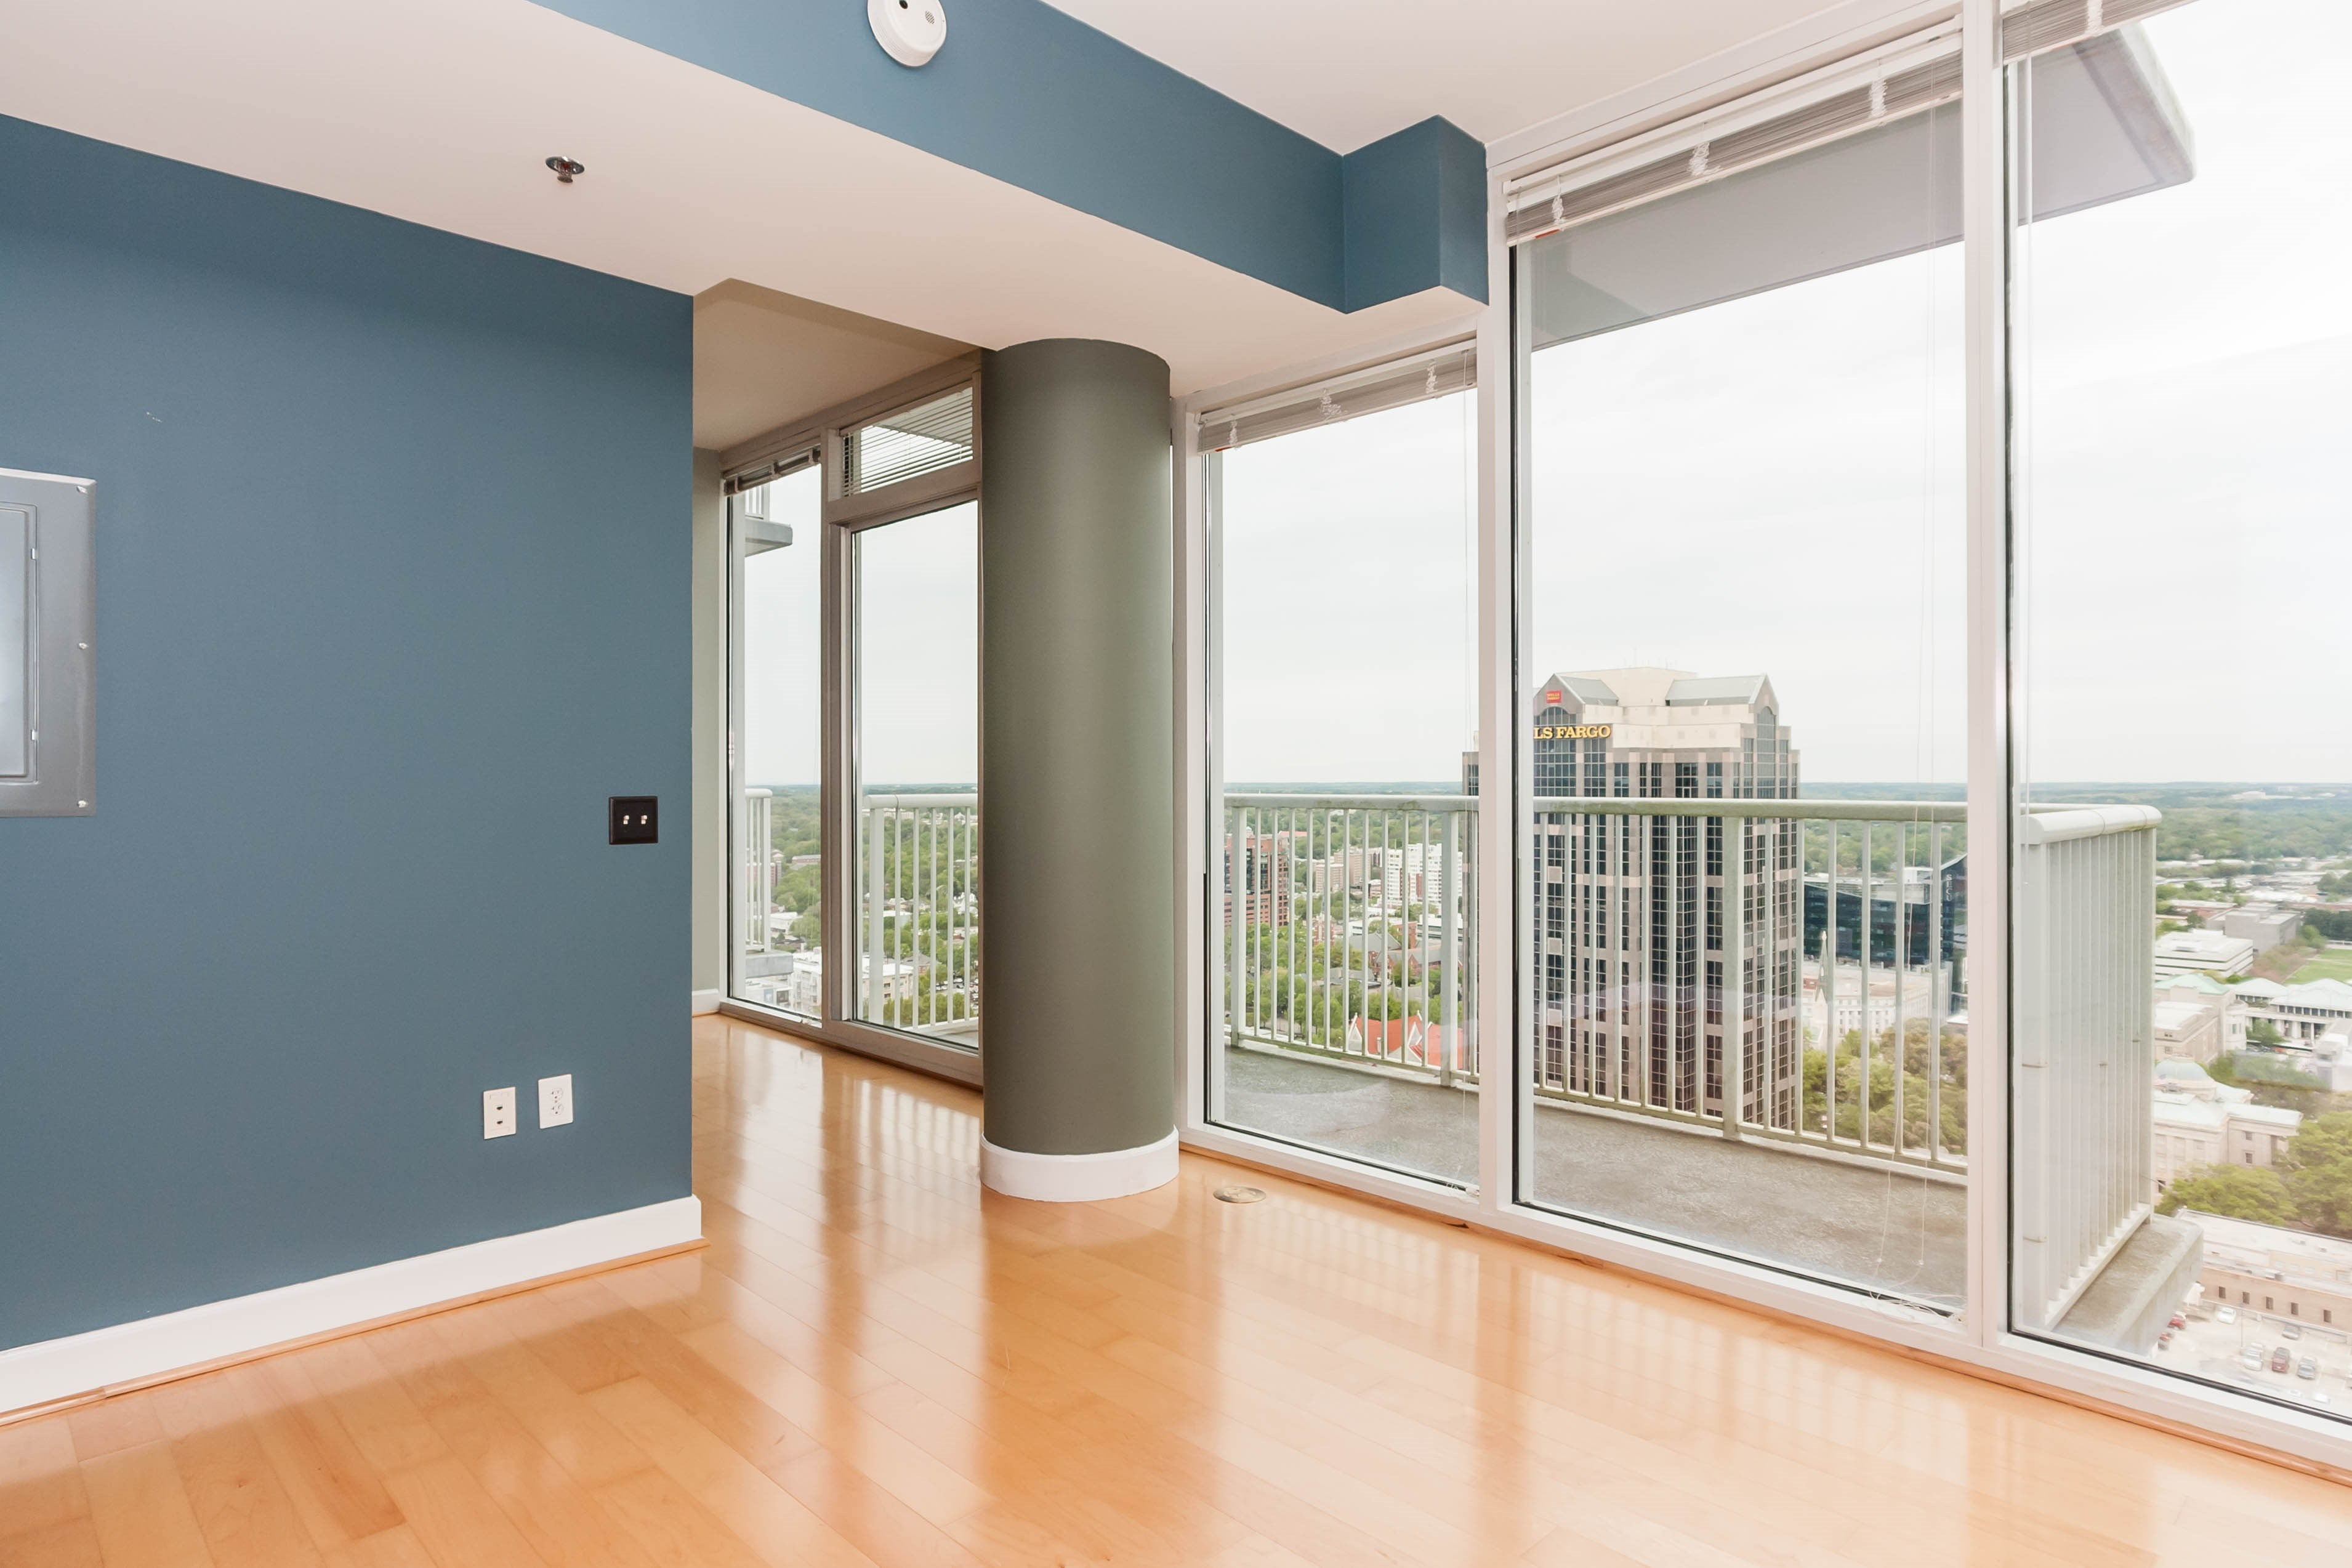 Condominium for Sale at PNC Plaza 1-bedroom 301 Fayetteville St Unit 3005 Raleigh, North Carolina 27601 United States